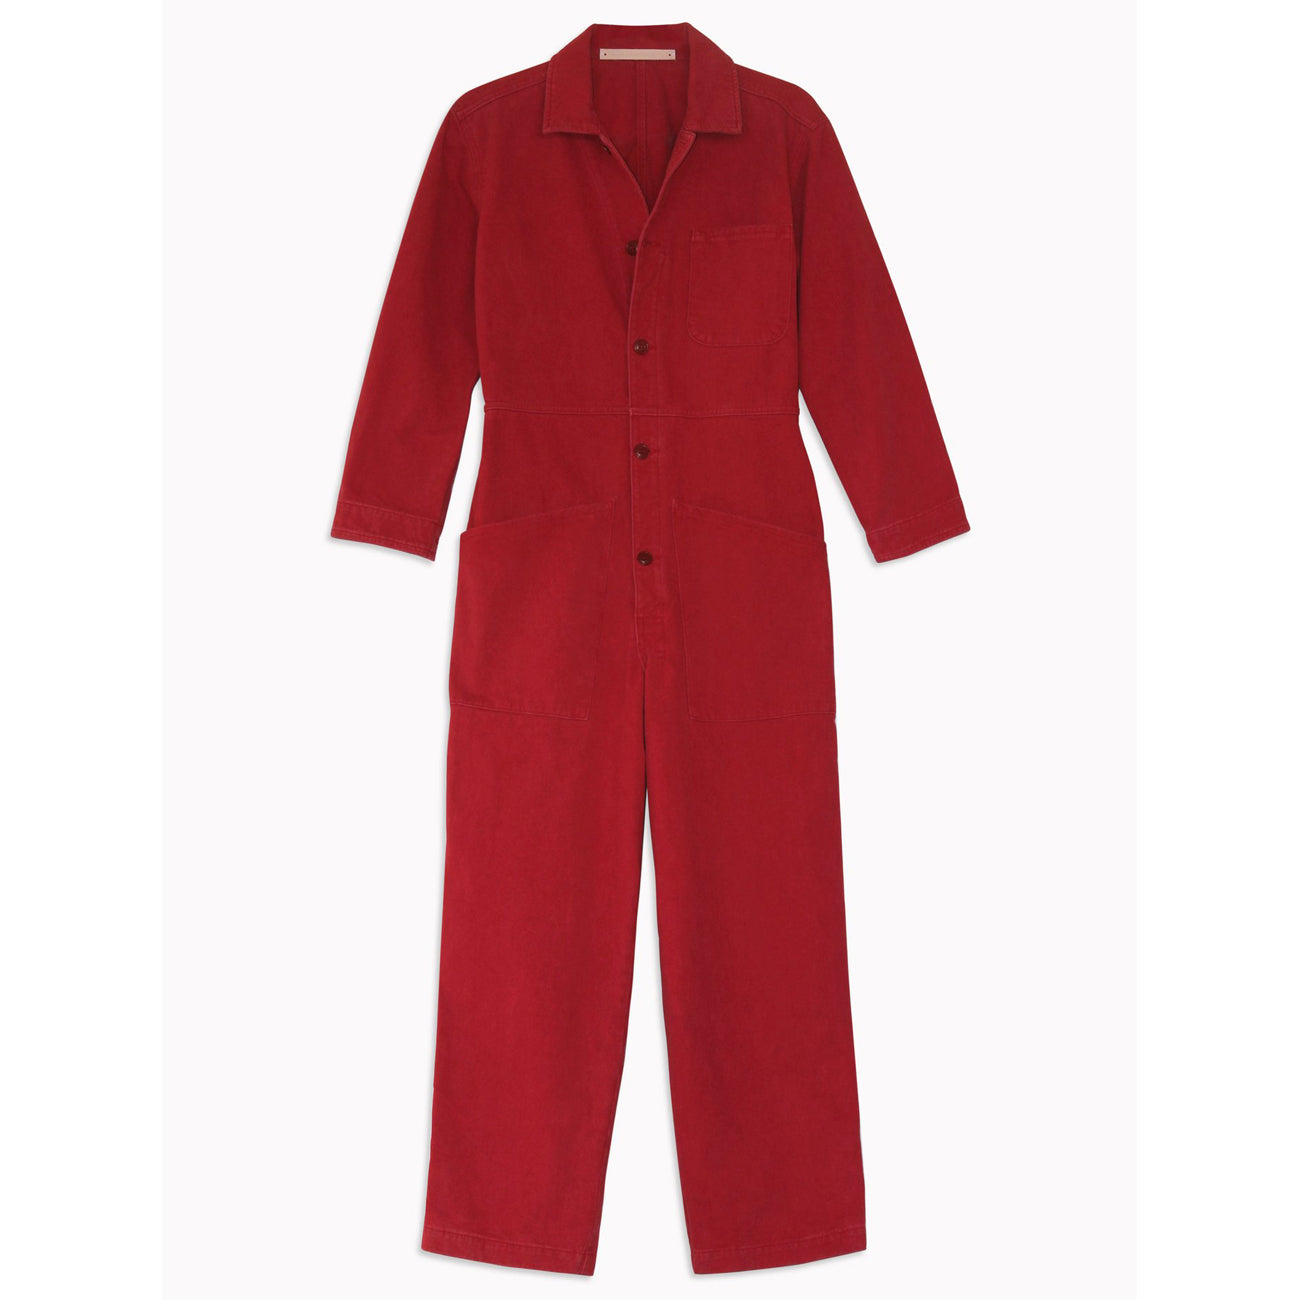 Bliss and Mischief Long Flight Suit in Raspberry